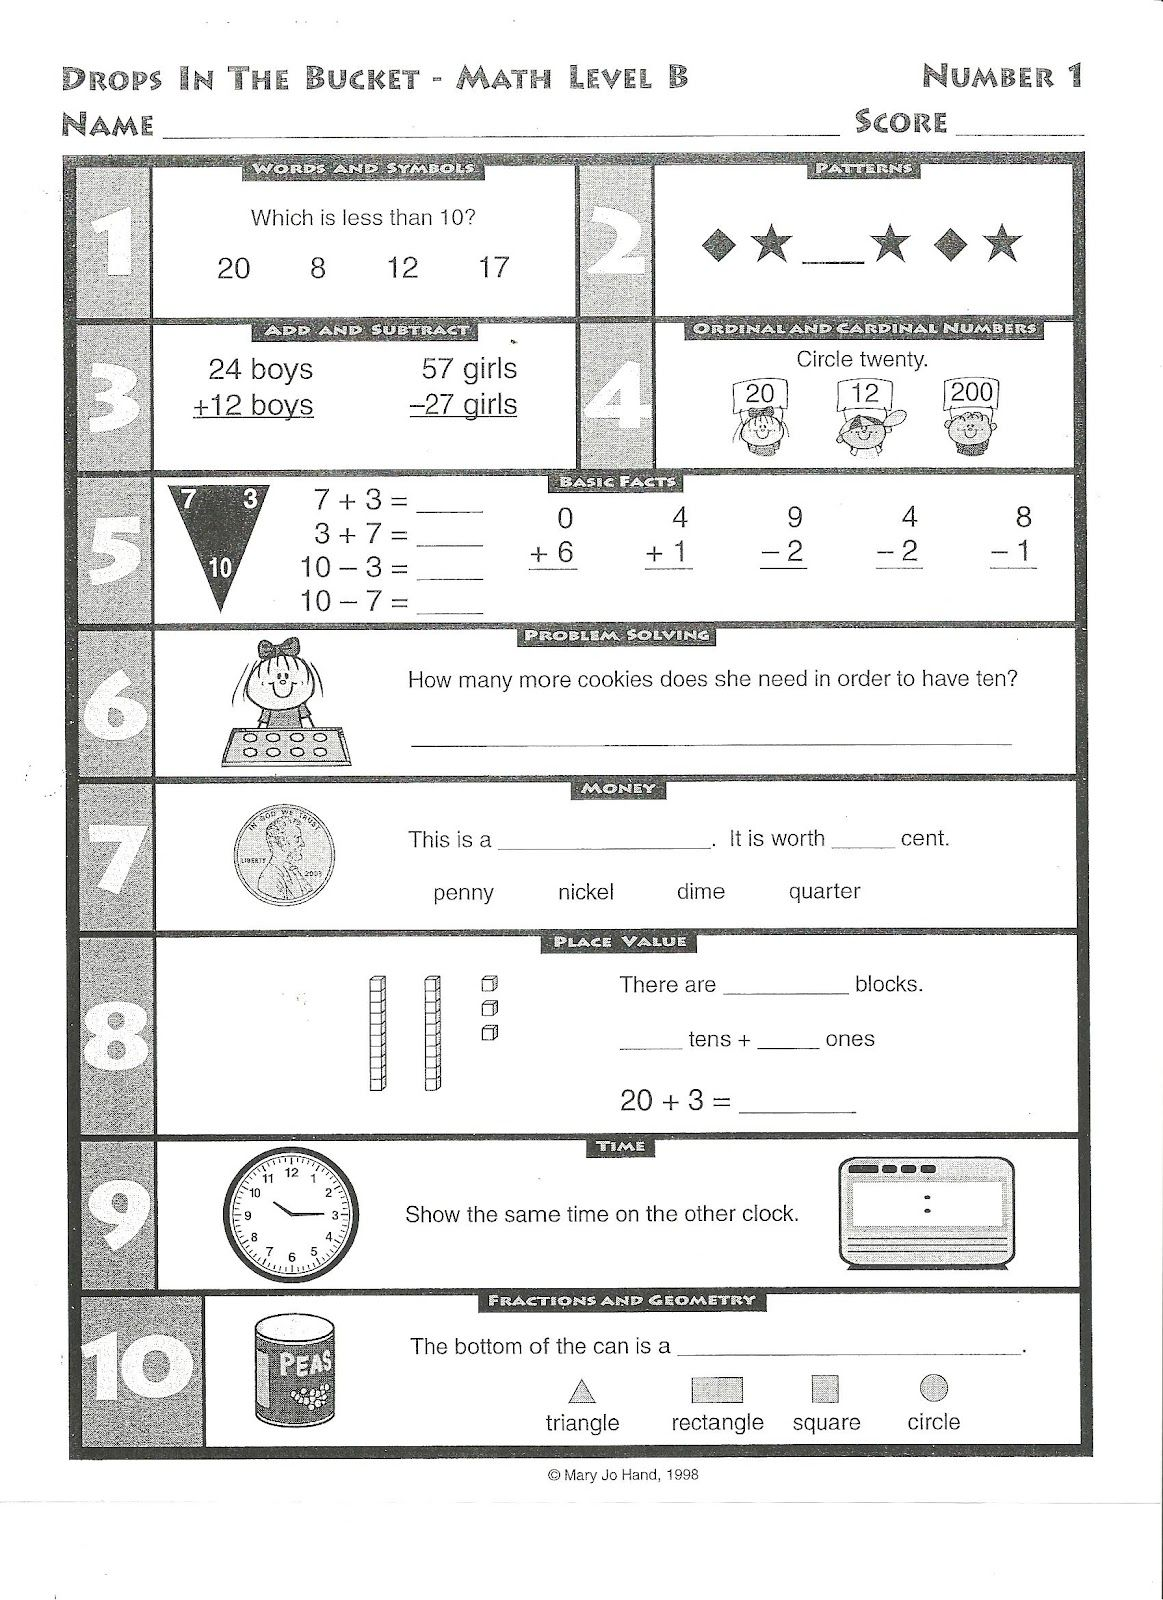 drop bucket worksheets | Nightly Math Homework Sandle | educational ...